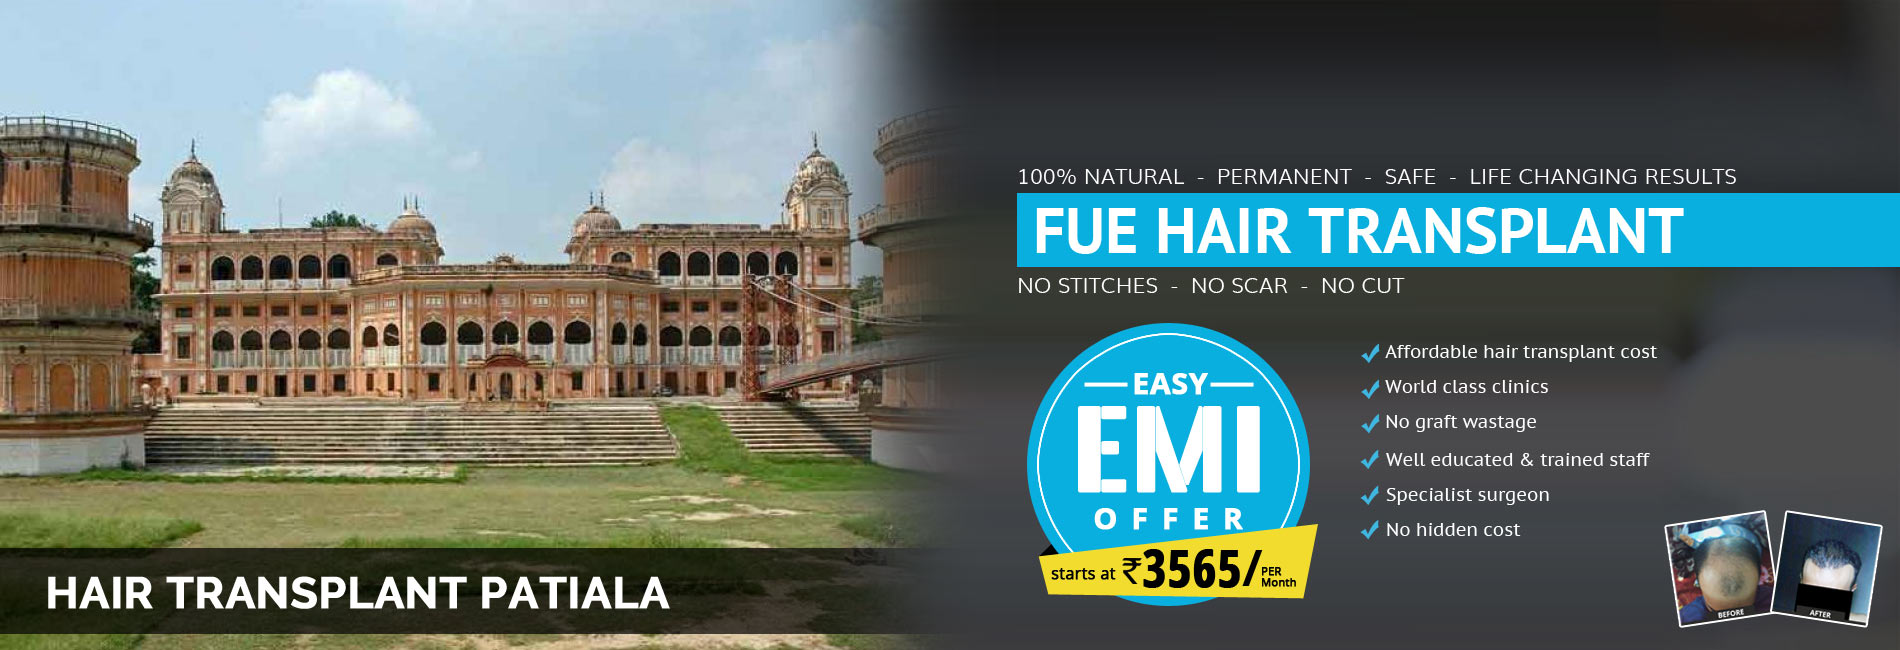 Hair Transplant Patiala